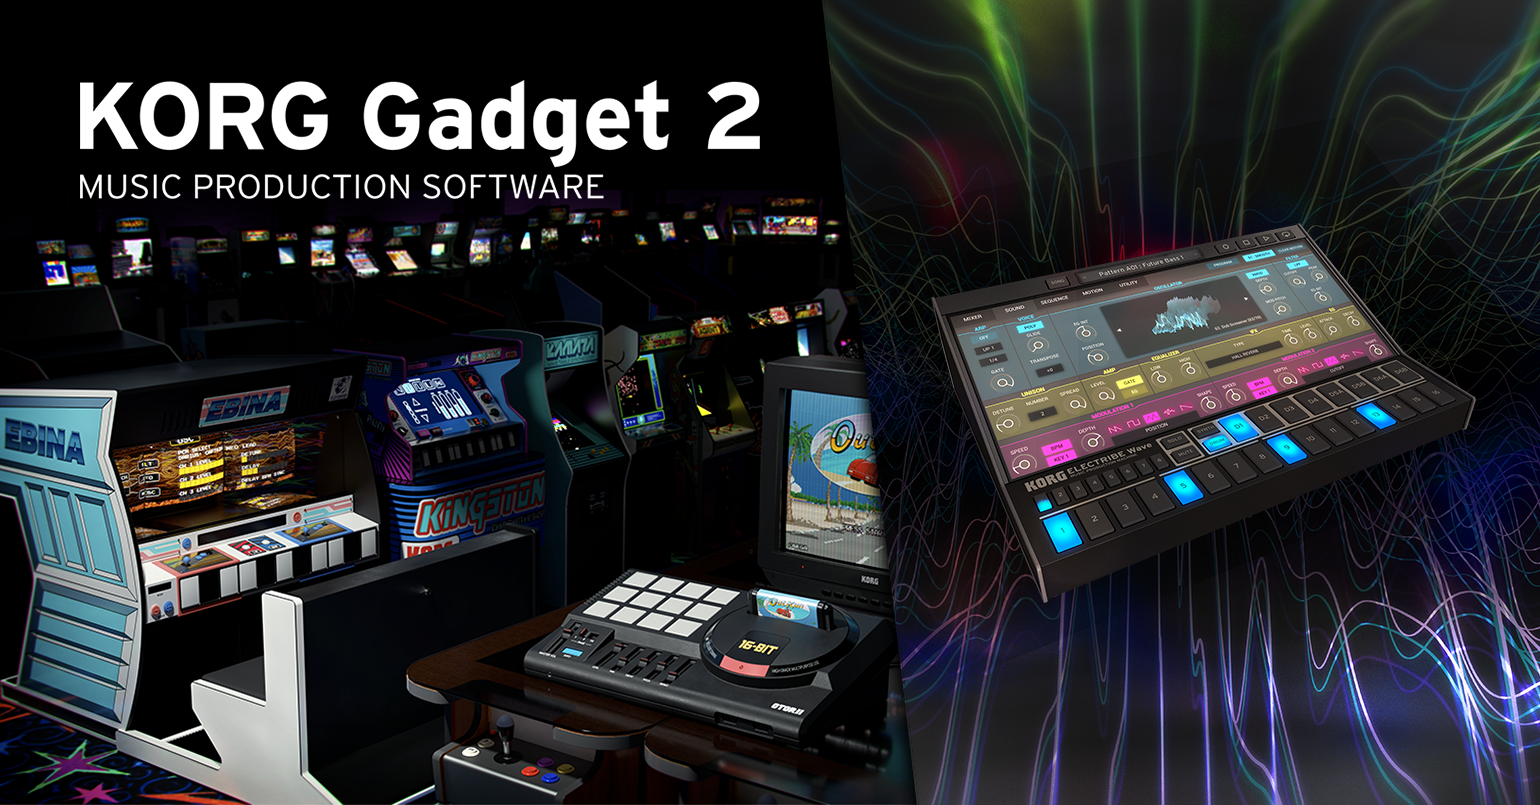 News | SEGA, TAITO, KORG : A major update of KORG Gadget 2